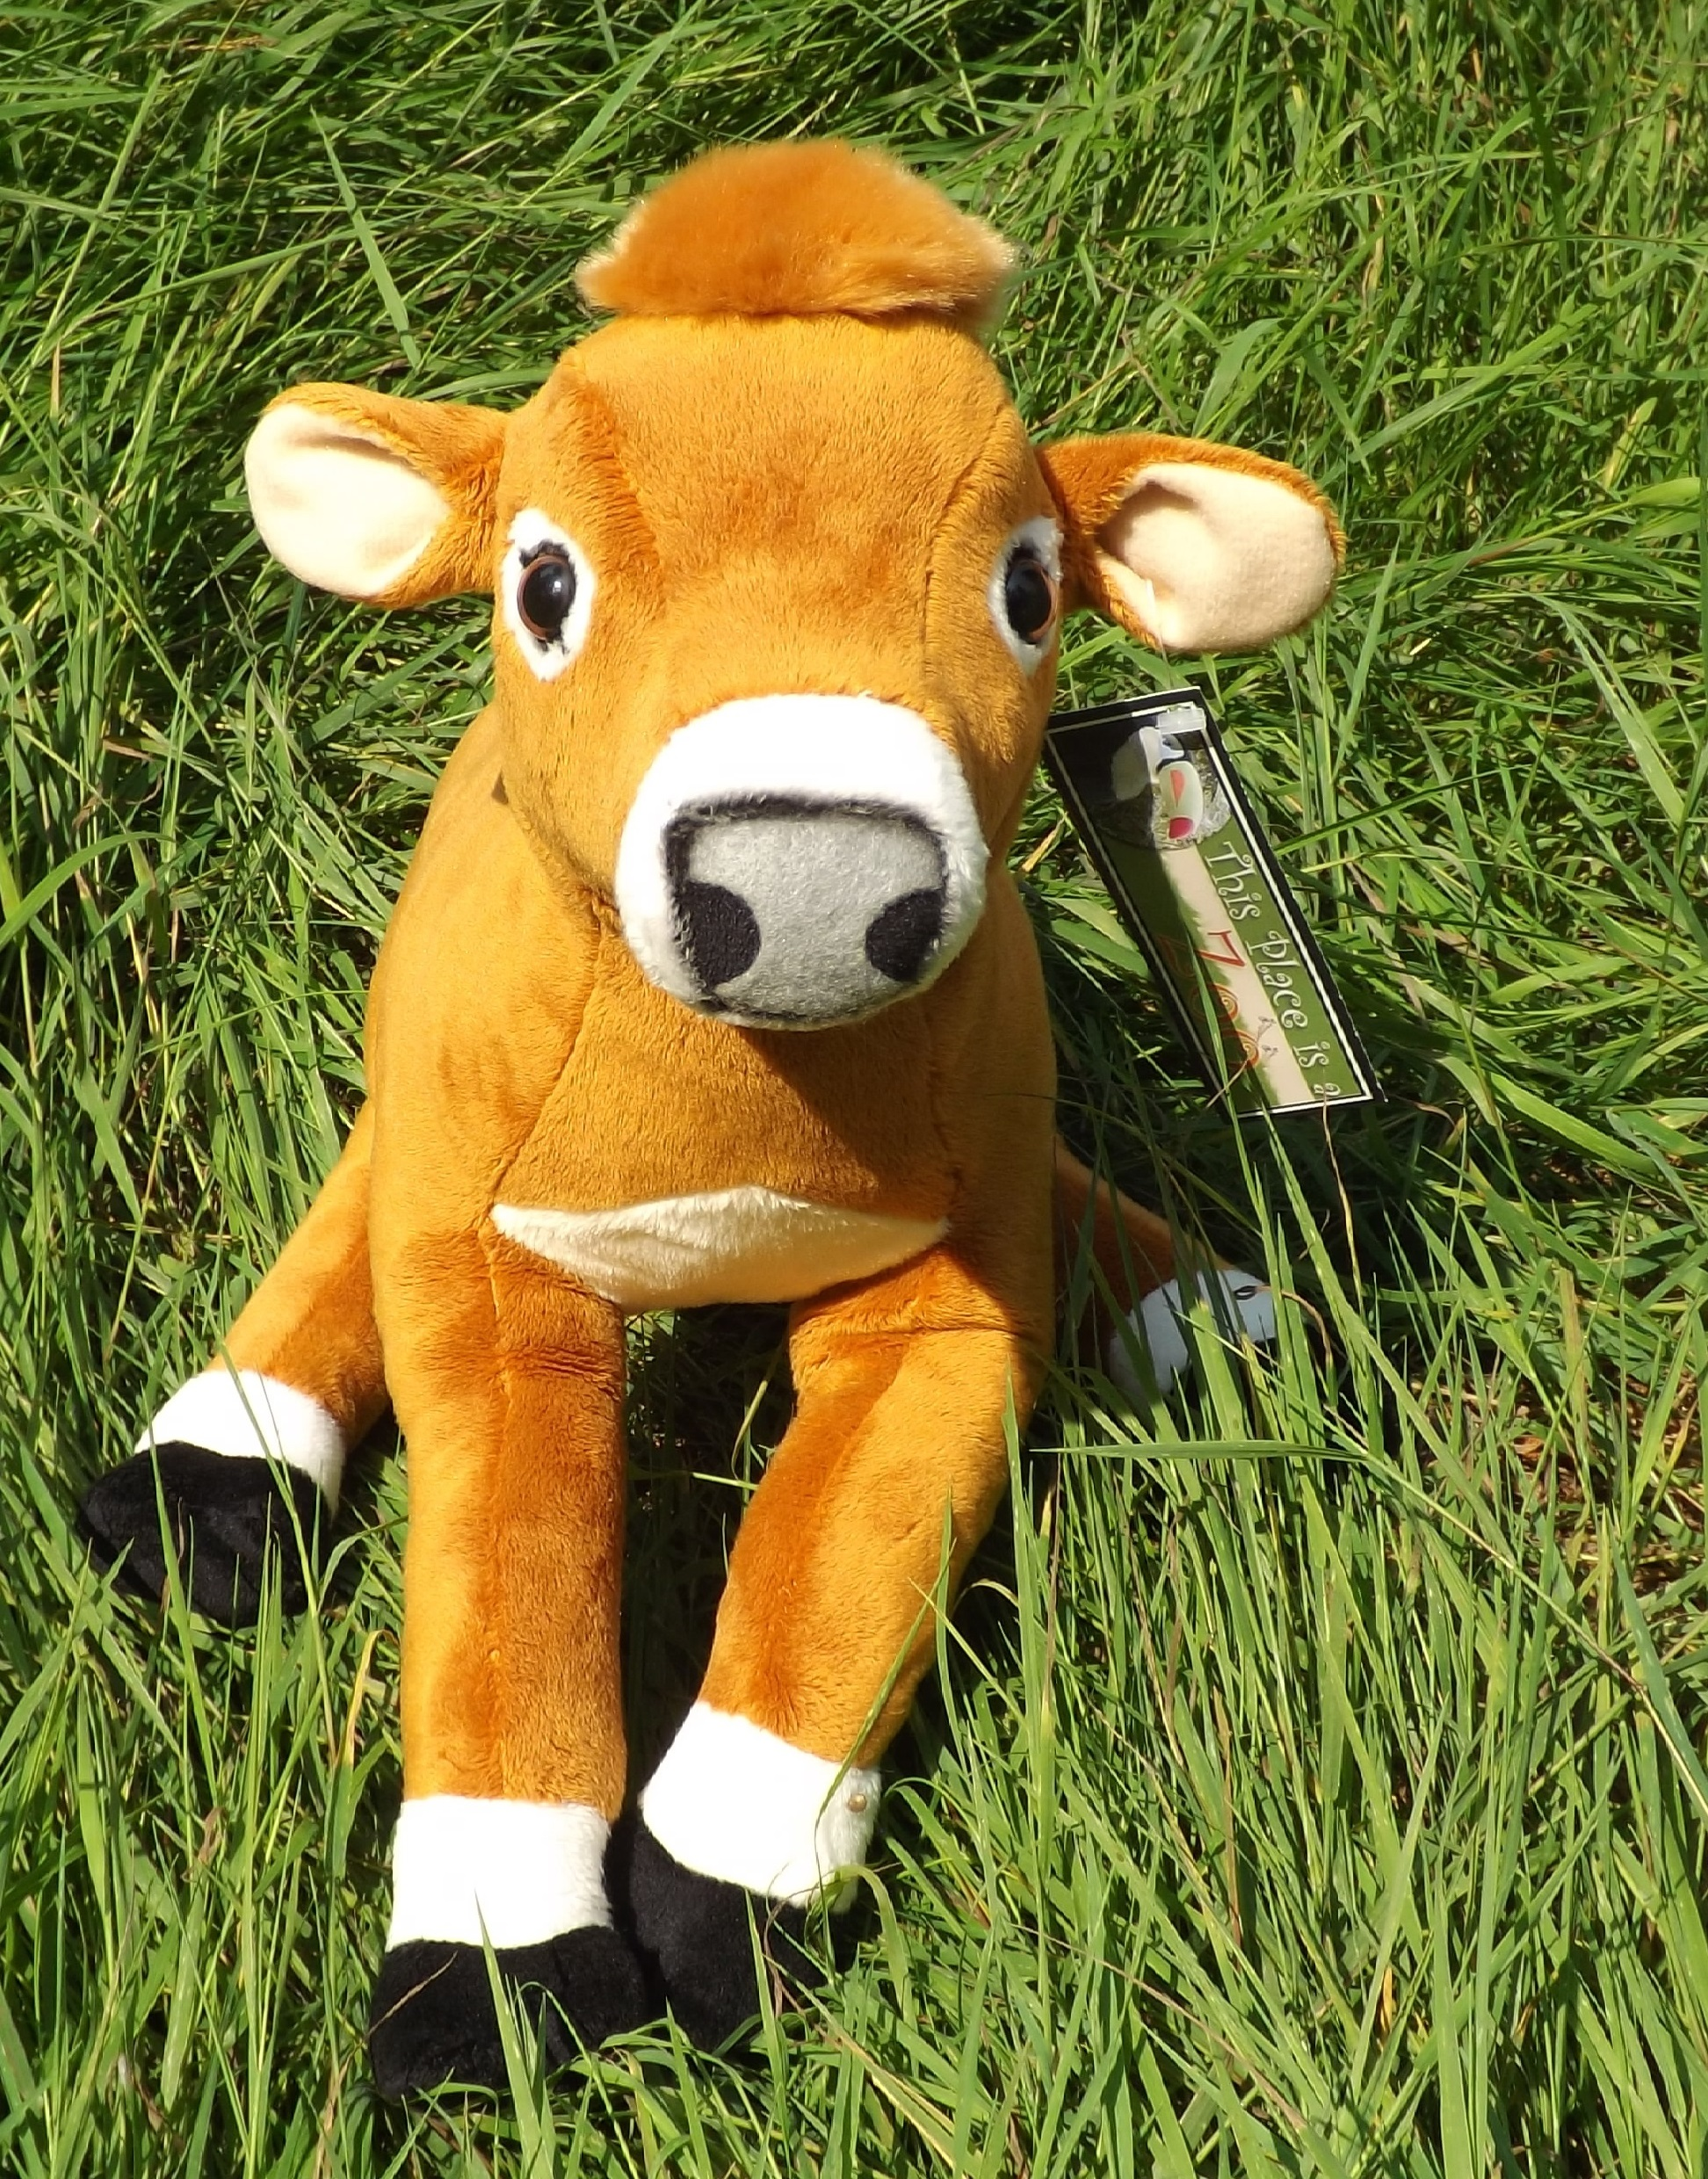 stuffed animal jersey cow